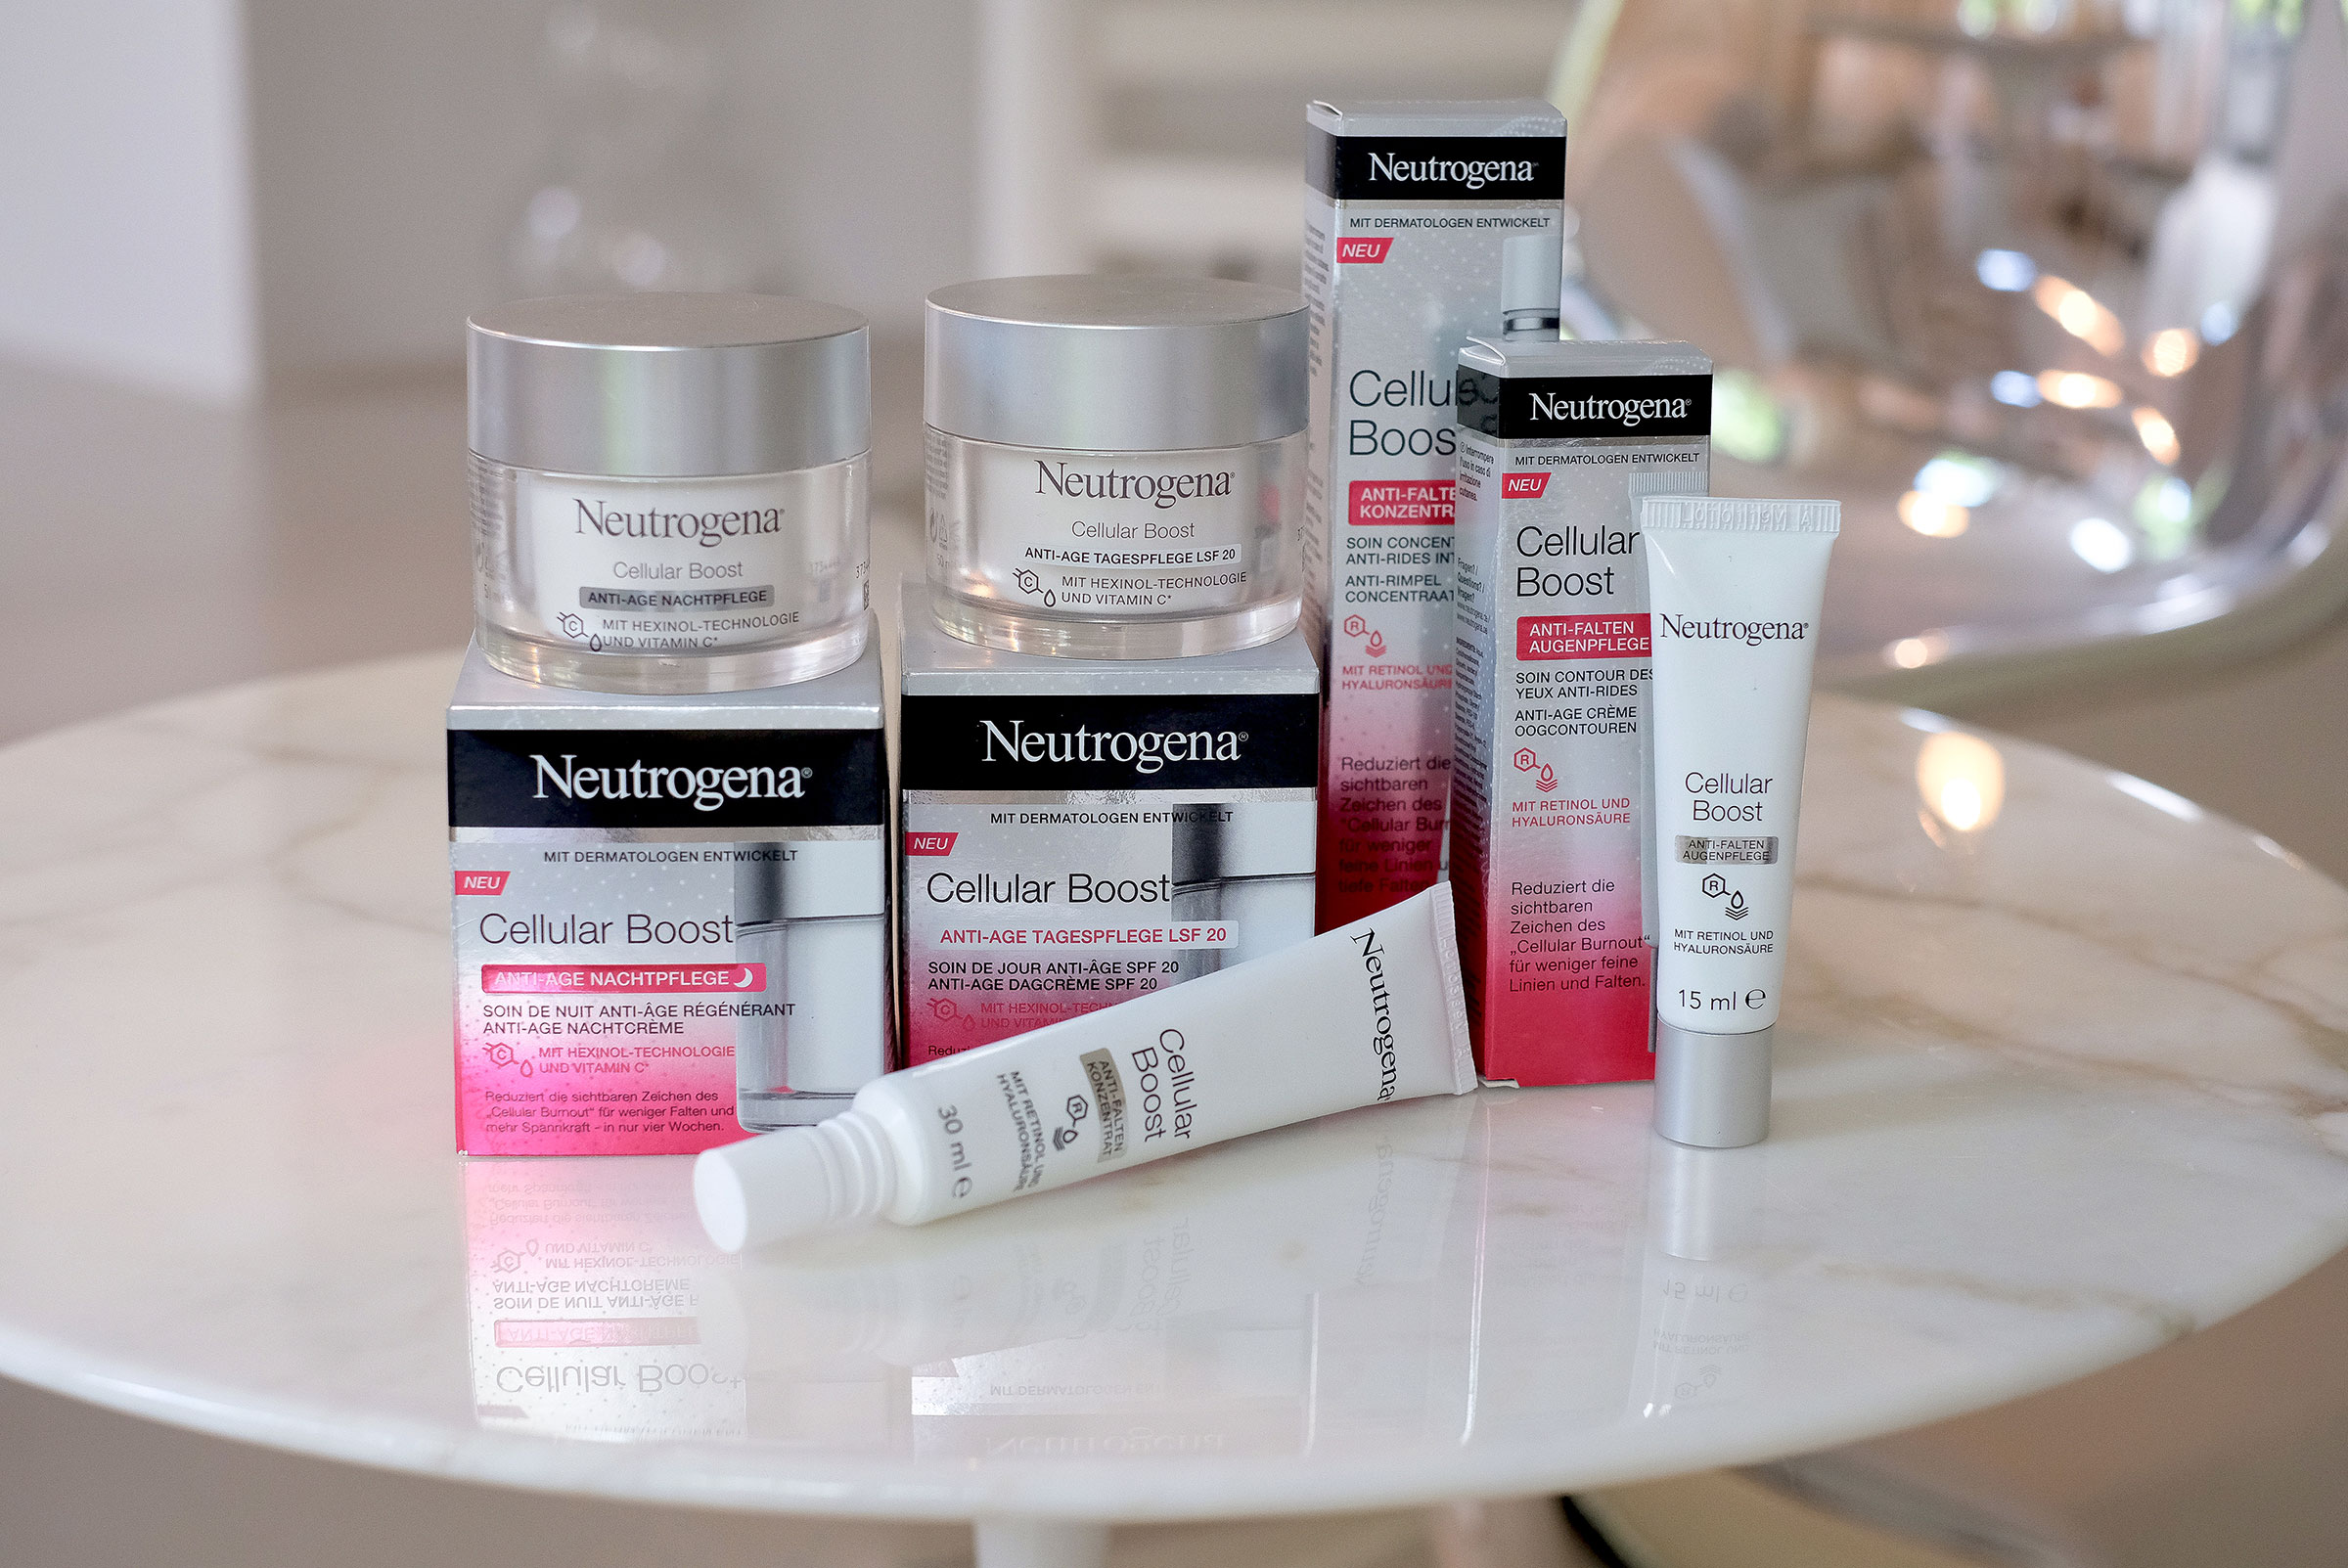 neutrogena, cellular boost, products, skincare, on a table